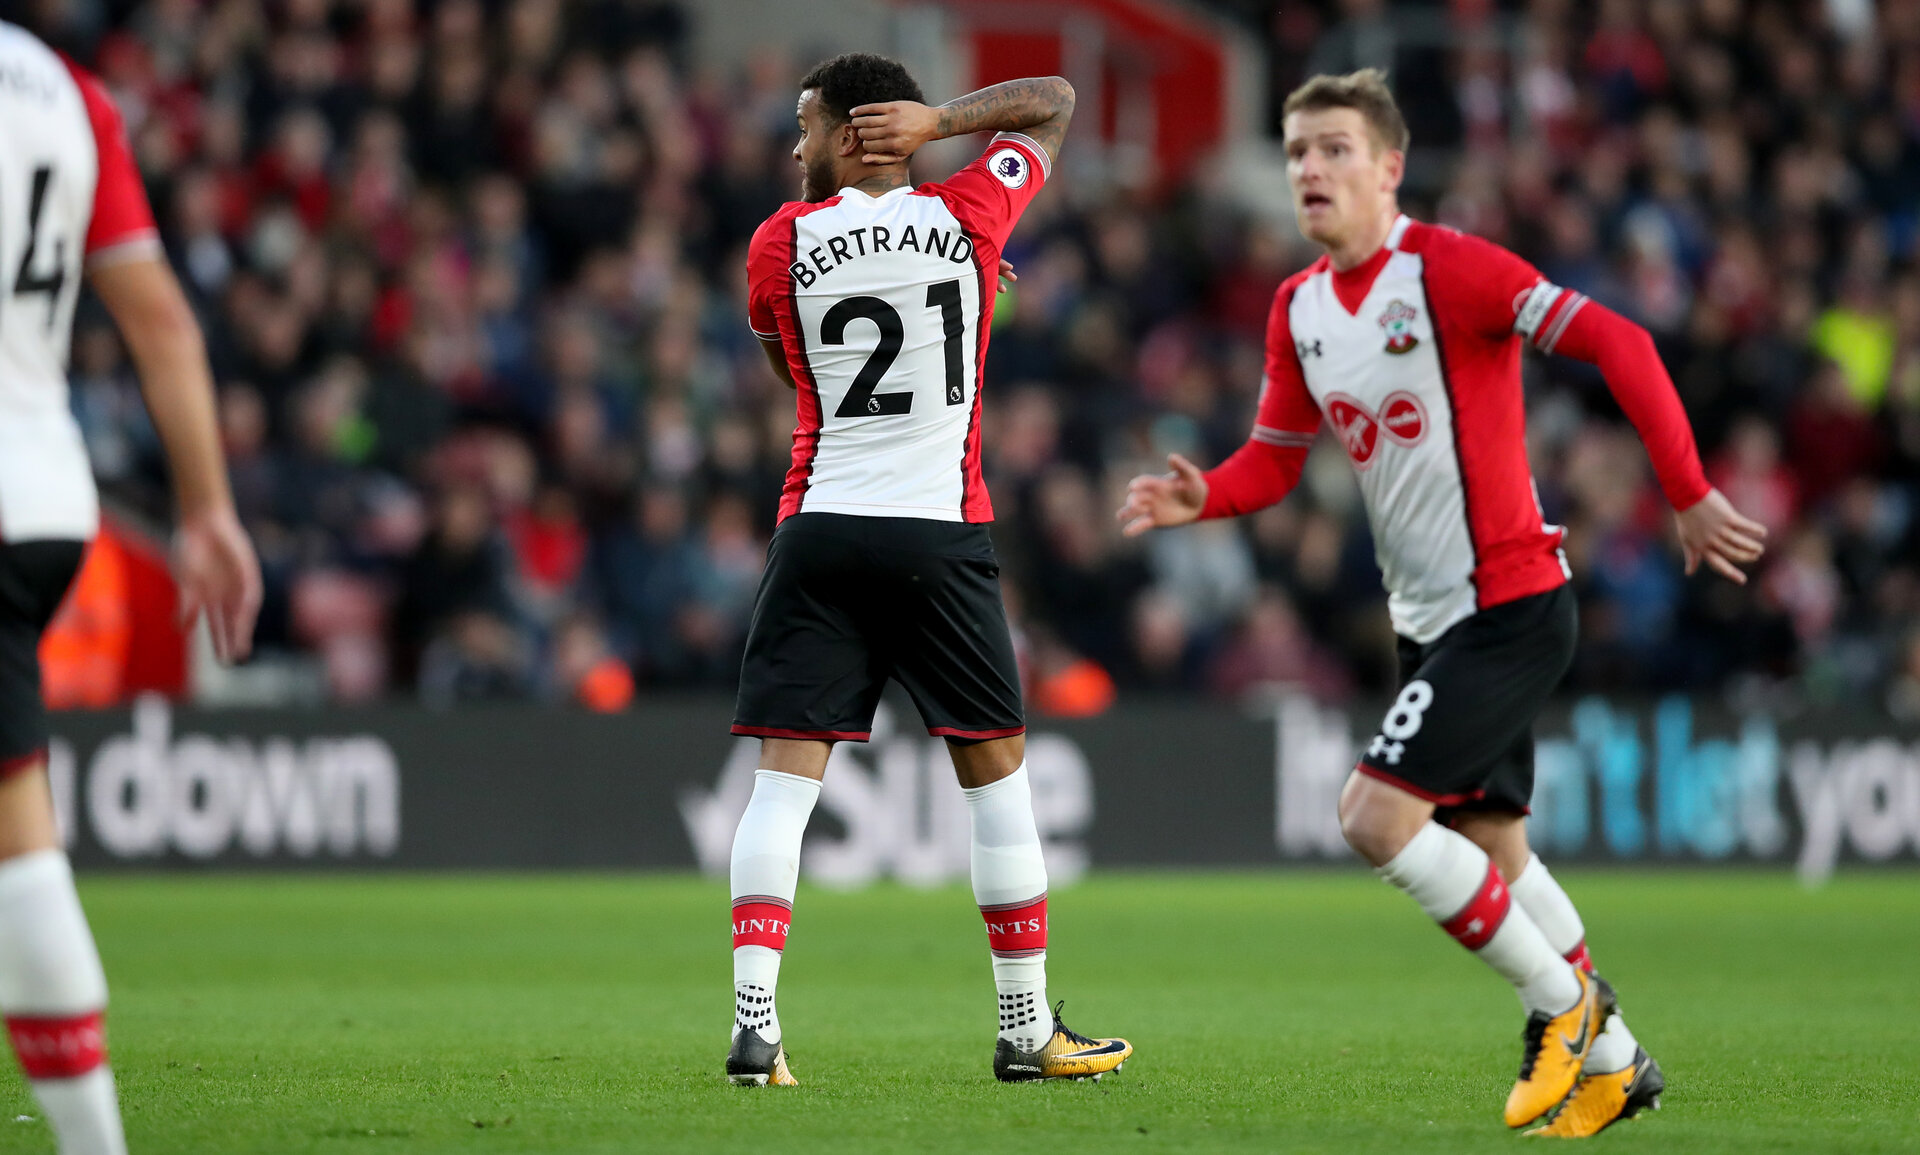 SOUTHAMPTON, ENGLAND - OCTOBER 21: Southampton's Ryan Bertrand hits the post with a free-kick during the Premier League match between Southampton and West Bromwich Albion at St Mary's Stadium on October 21, 2017 in Southampton, England. (Photo by Matt Watson/Southampton FC via Getty Images)